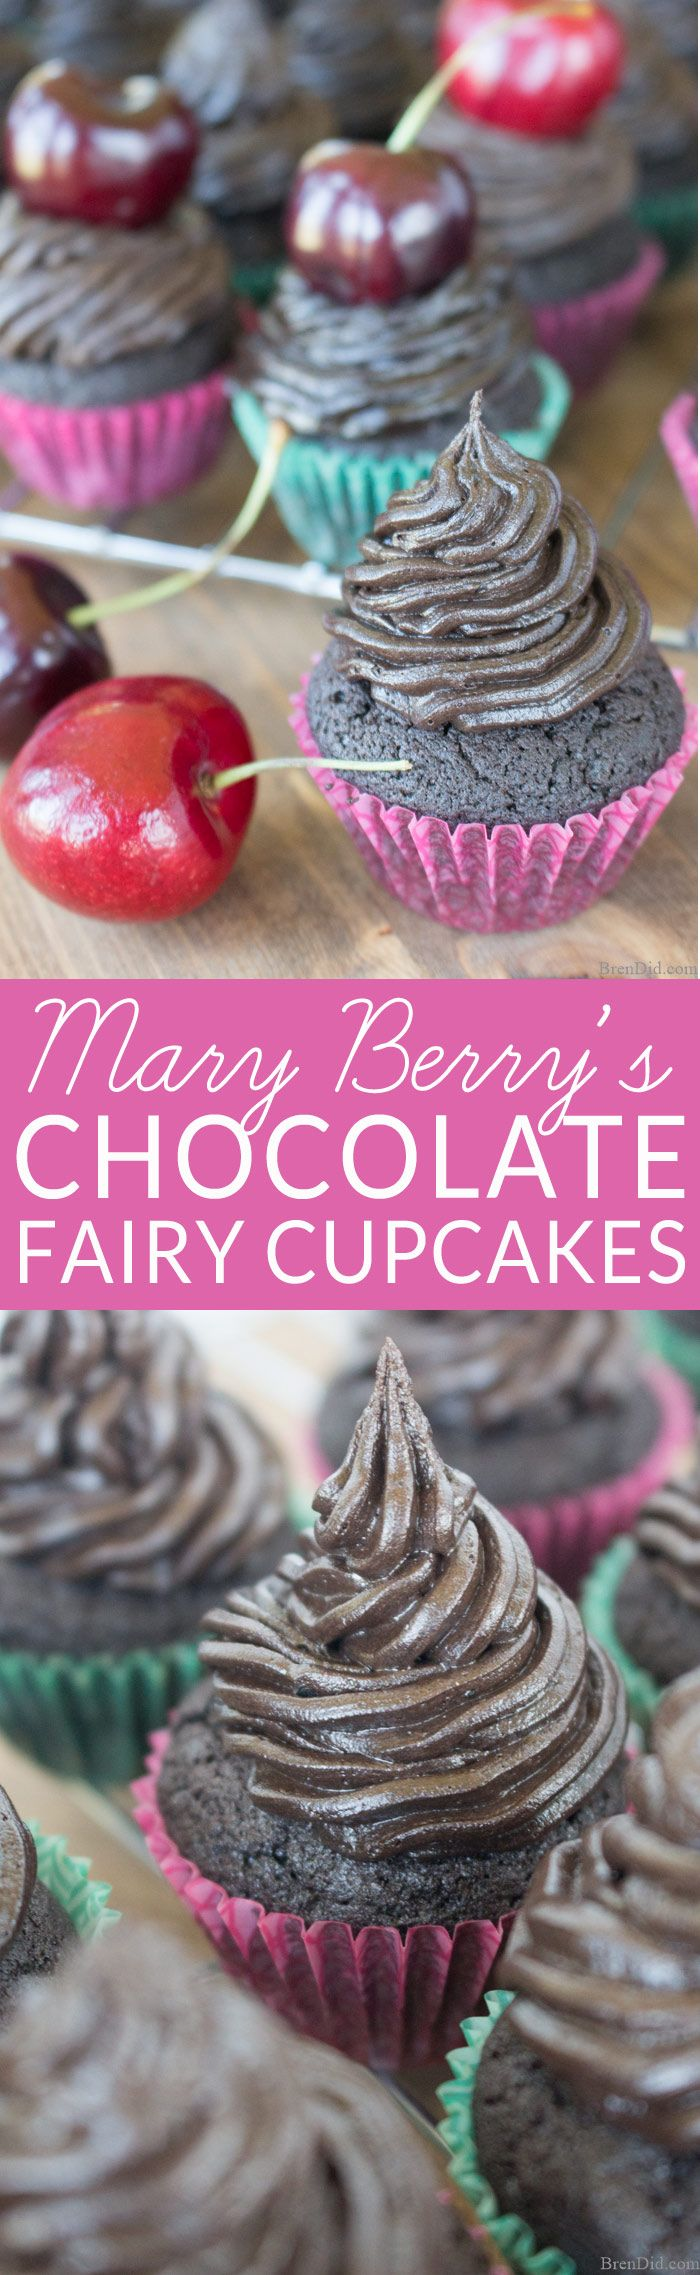 The Great British Baking Show (Great British Bake Off) is a favorite baking show. Learn how to make Mary Berry's Fairy cakes with this easy Chocolate Cupcake Recipe. Make this…